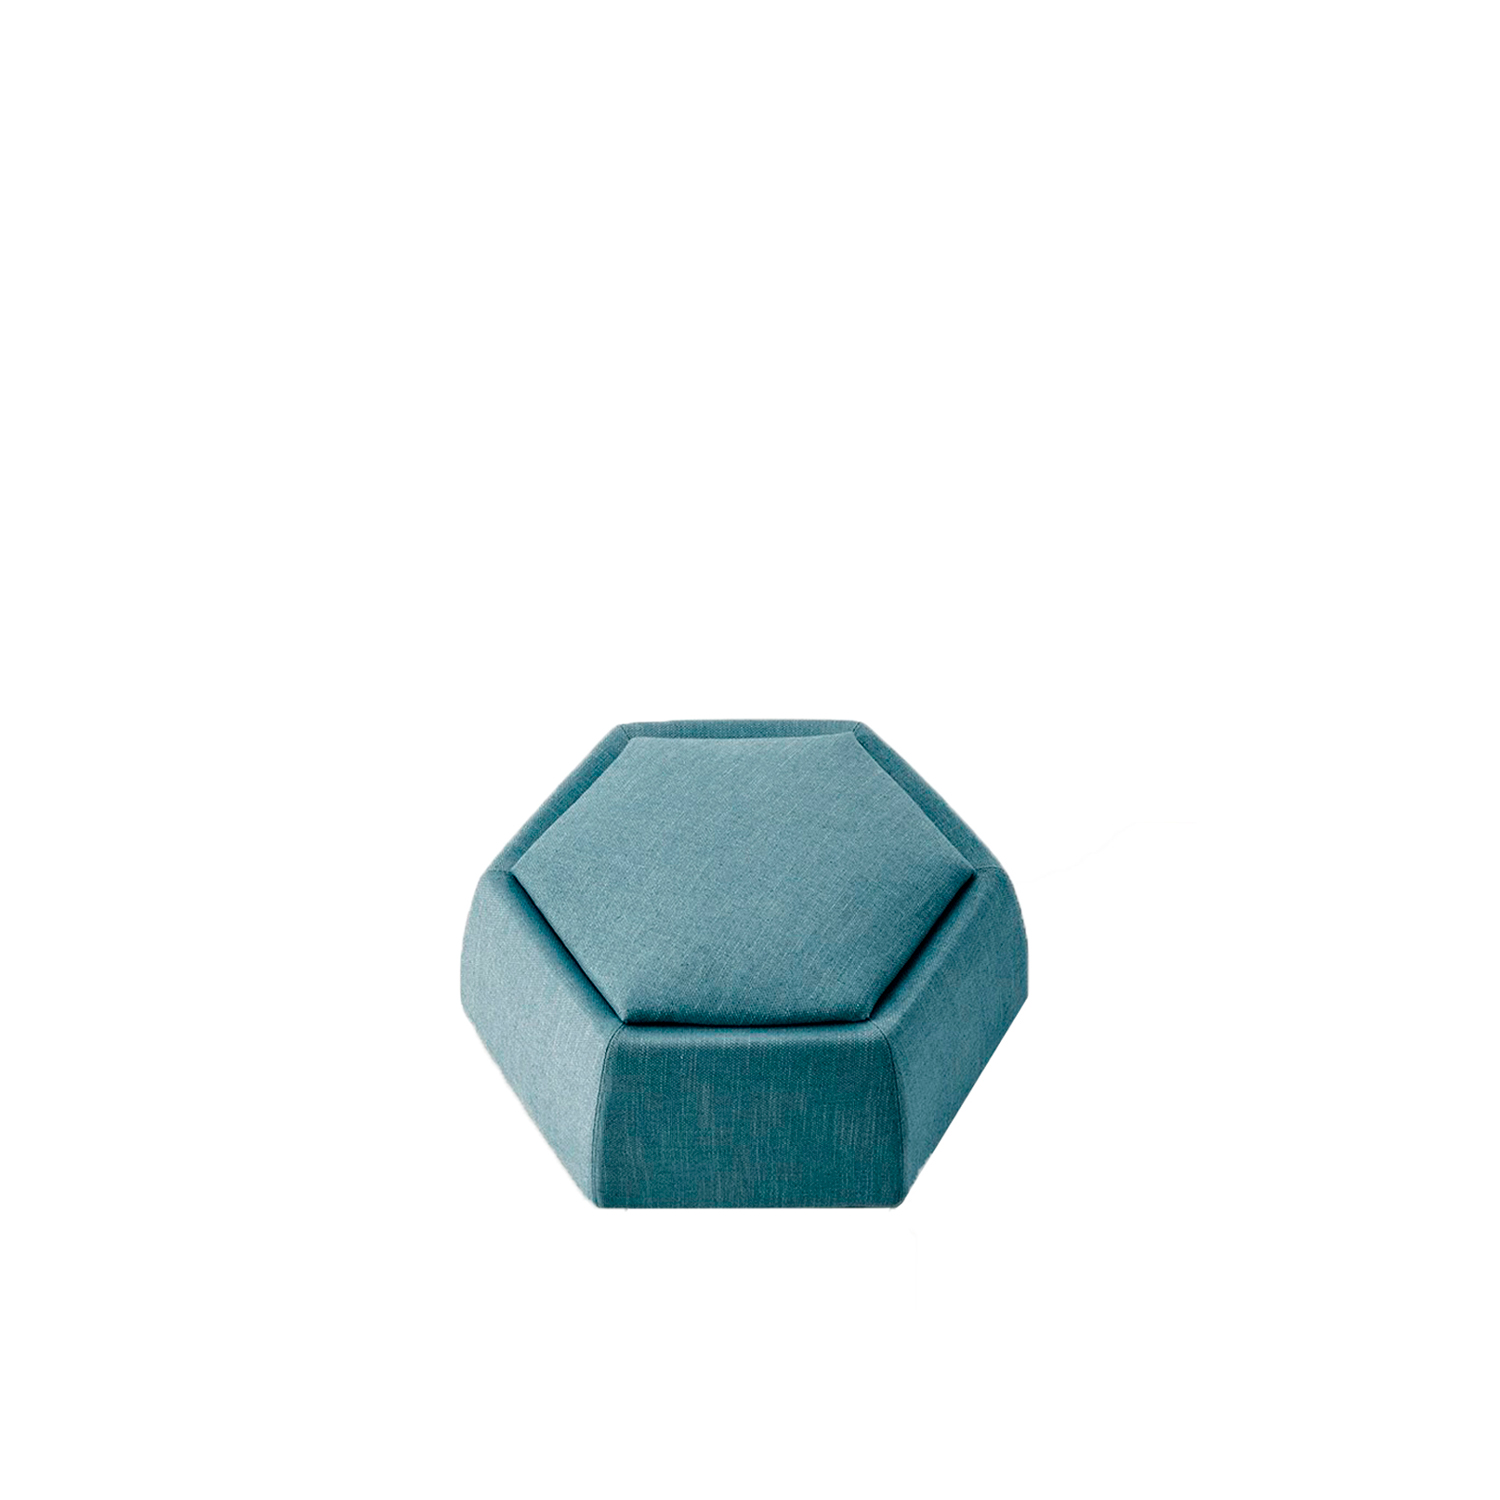 Honey Pouf - Eclectic by nature, the Honey pouf appears to be a small hexagonal cell that adapts to the needs of the moment. Honey features a seamless modular design, and the various elements can be attached and combined to form a veritable honeycomb. Honey is an artisanal product, created using a sartorial process.  Additional removable cover is available, please enquire for prices. | Matter of Stuff